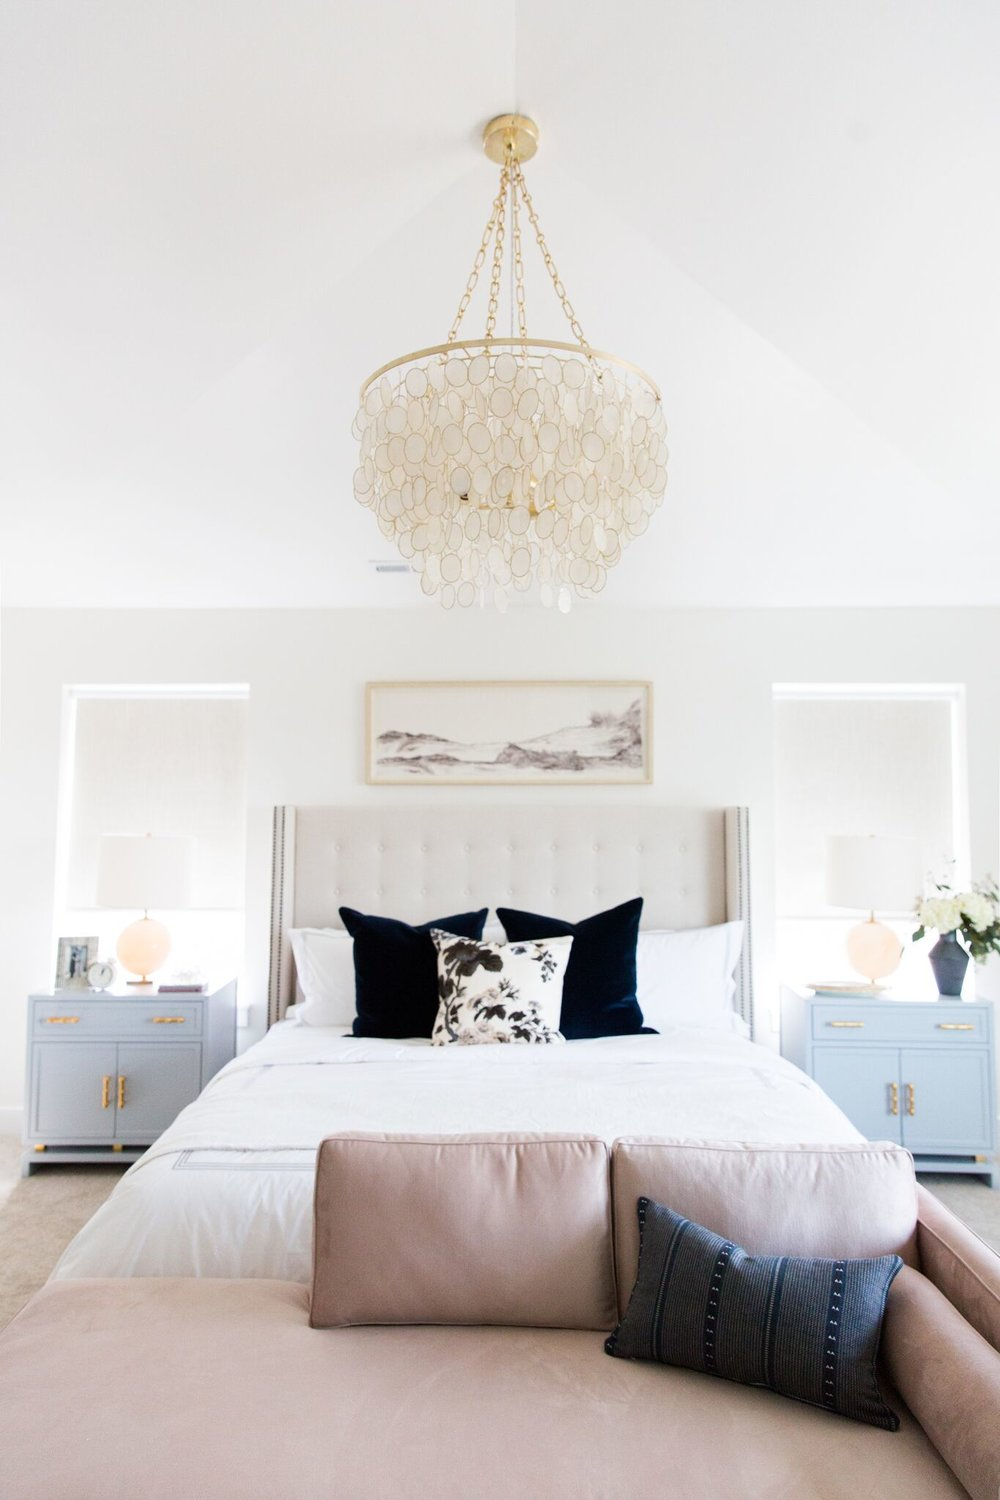 White bed with large white headboard in bedroom